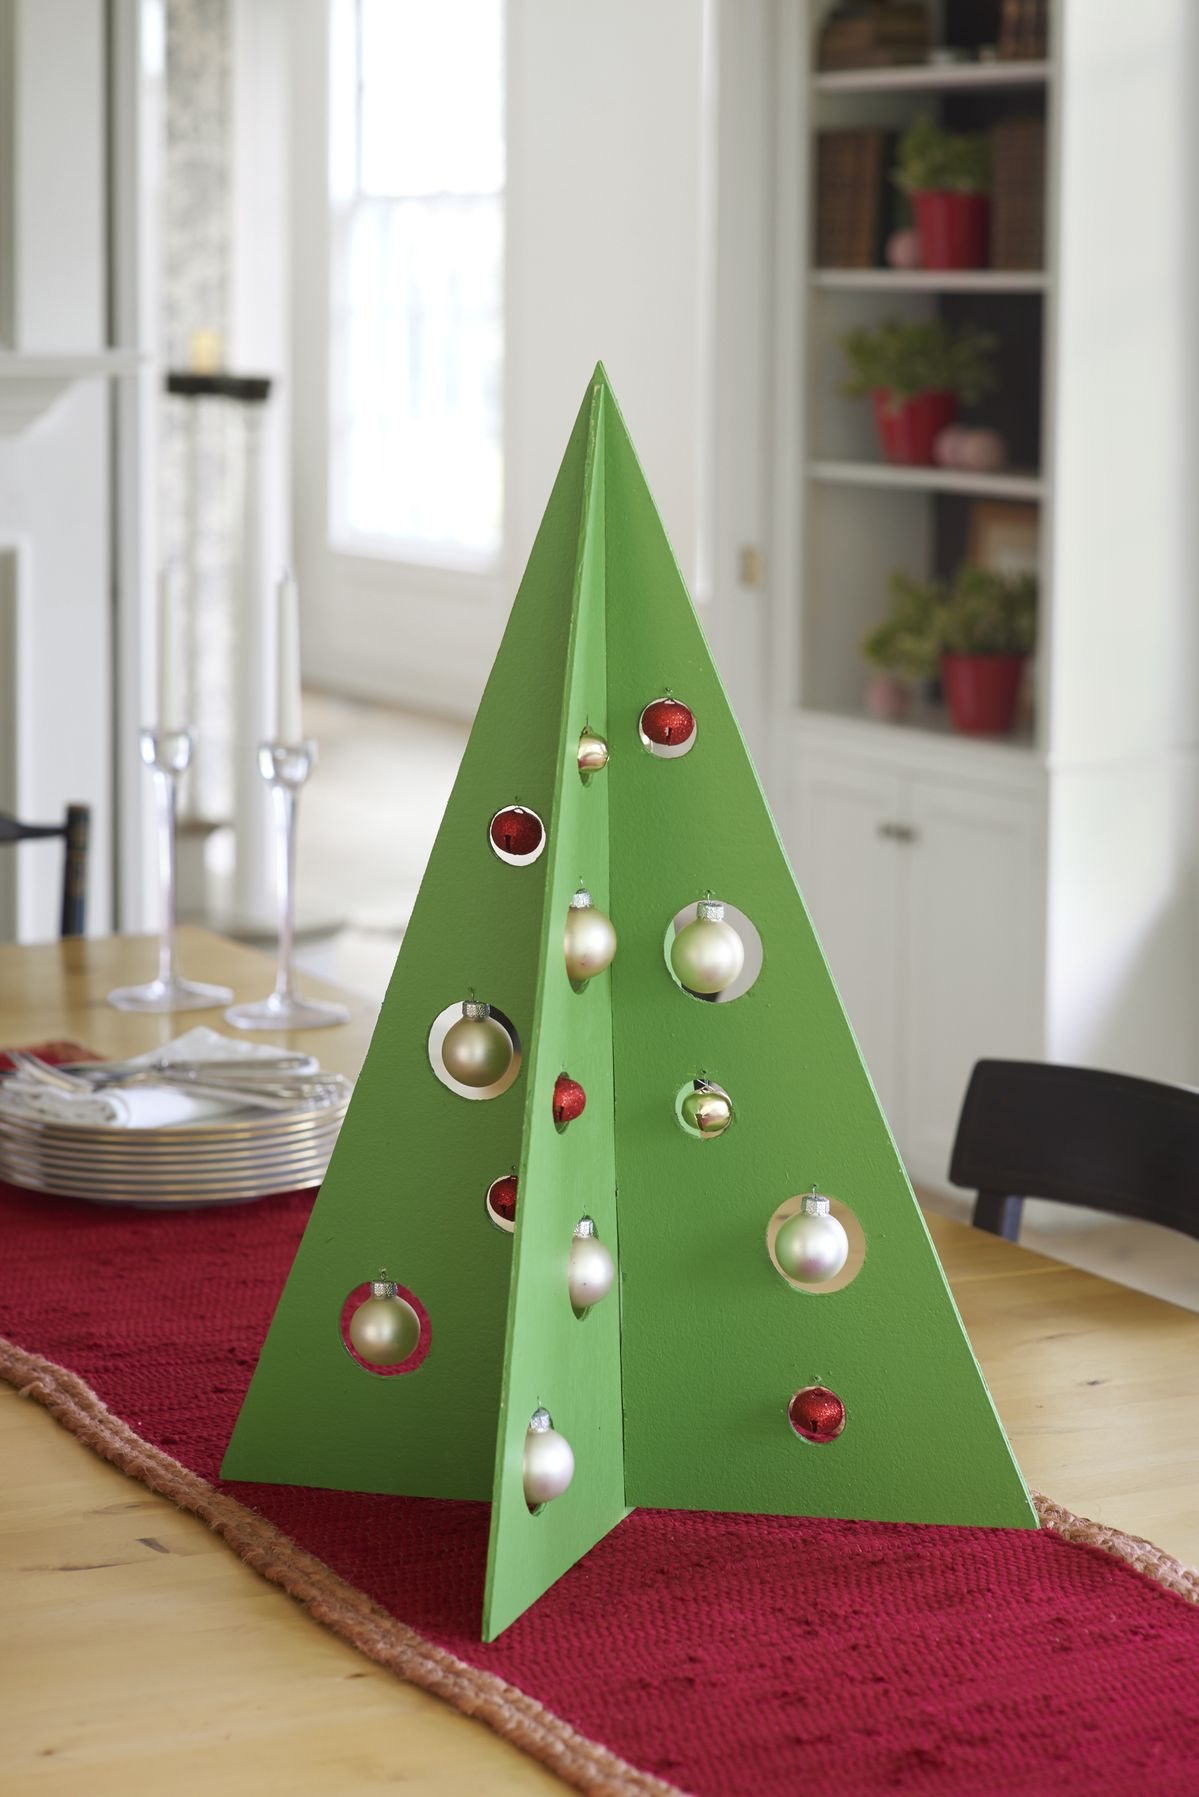 Here's a truly evergreen centerpiece: This modern take on a festive fir won't wilt, doesn't need watering, and can be stored flat, then hauled out season after season.